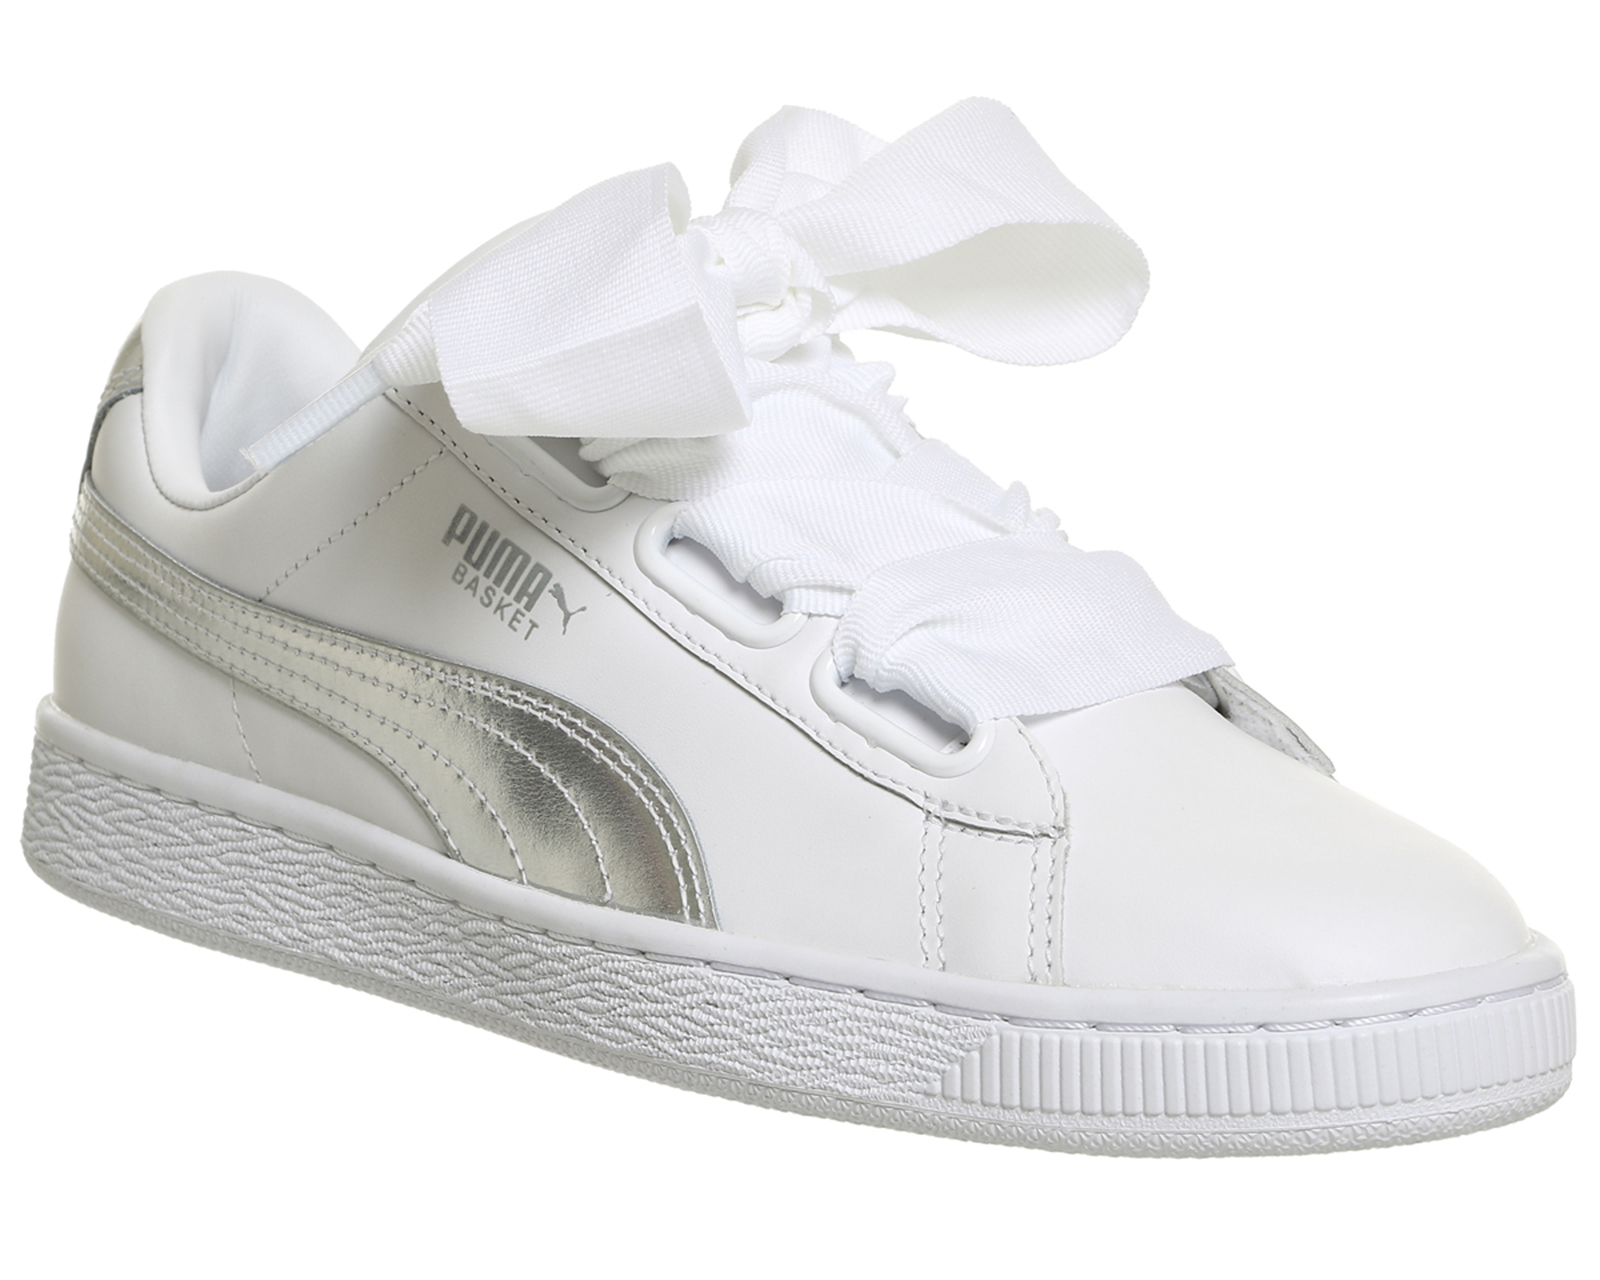 d8b731838f2 Puma White And Silver Shoes cv-writing-jobs-recruitment-uk.co.uk